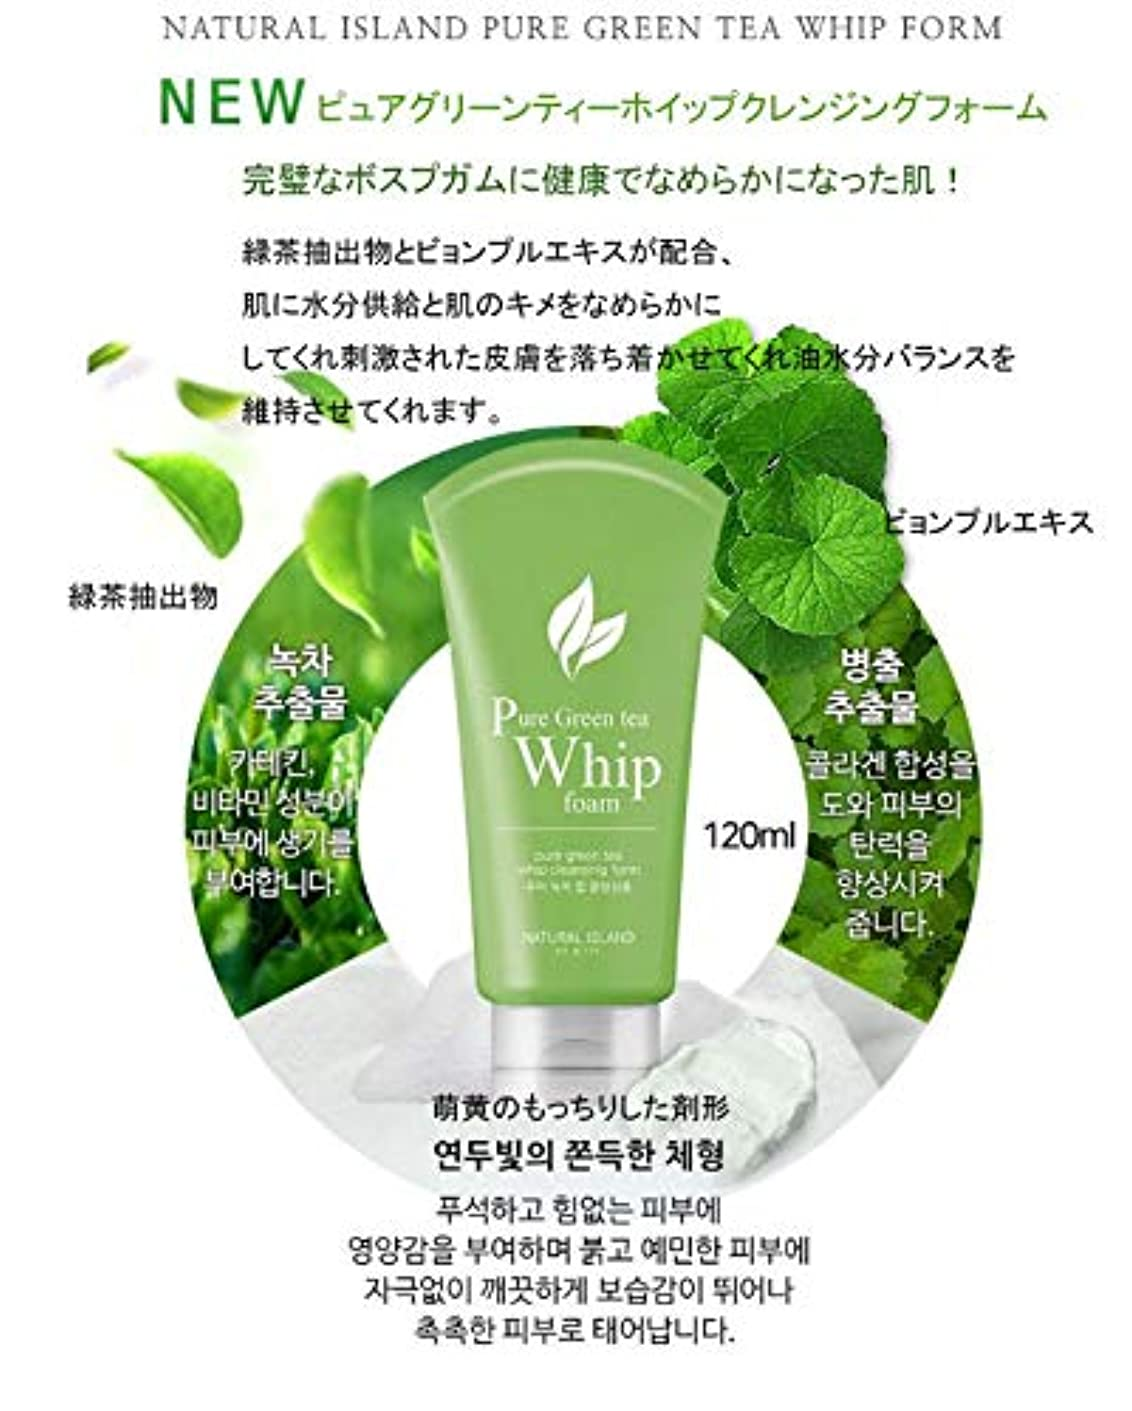 NATURAL ISLAND CLEANSING FOAM カスタムクレンジングフォーム Pure Green Tea